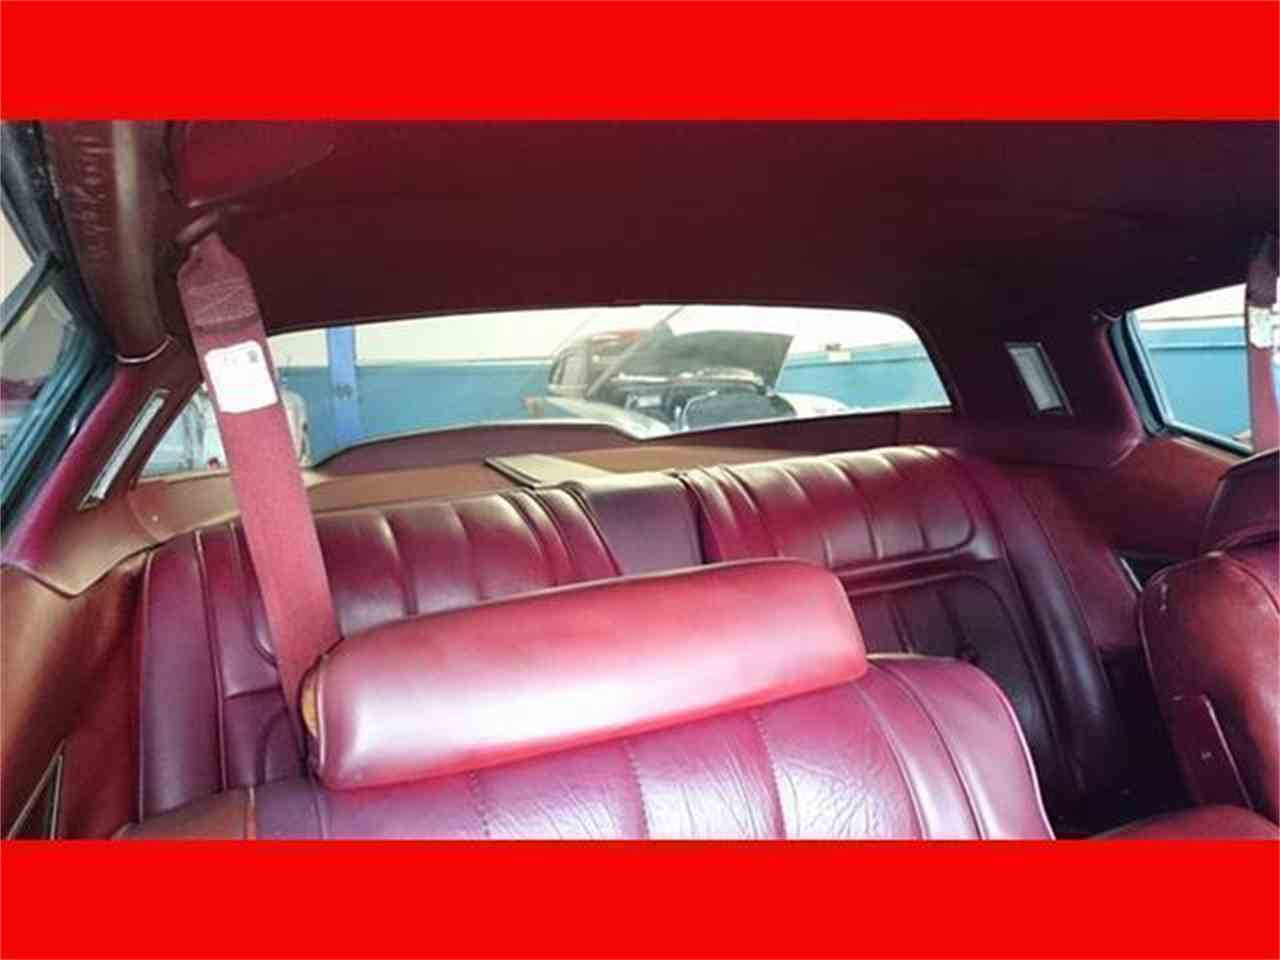 Large Picture of Classic '72 Buick RivieraBoat Tail Offered by Sassy Motorsports Inc. - JCVM